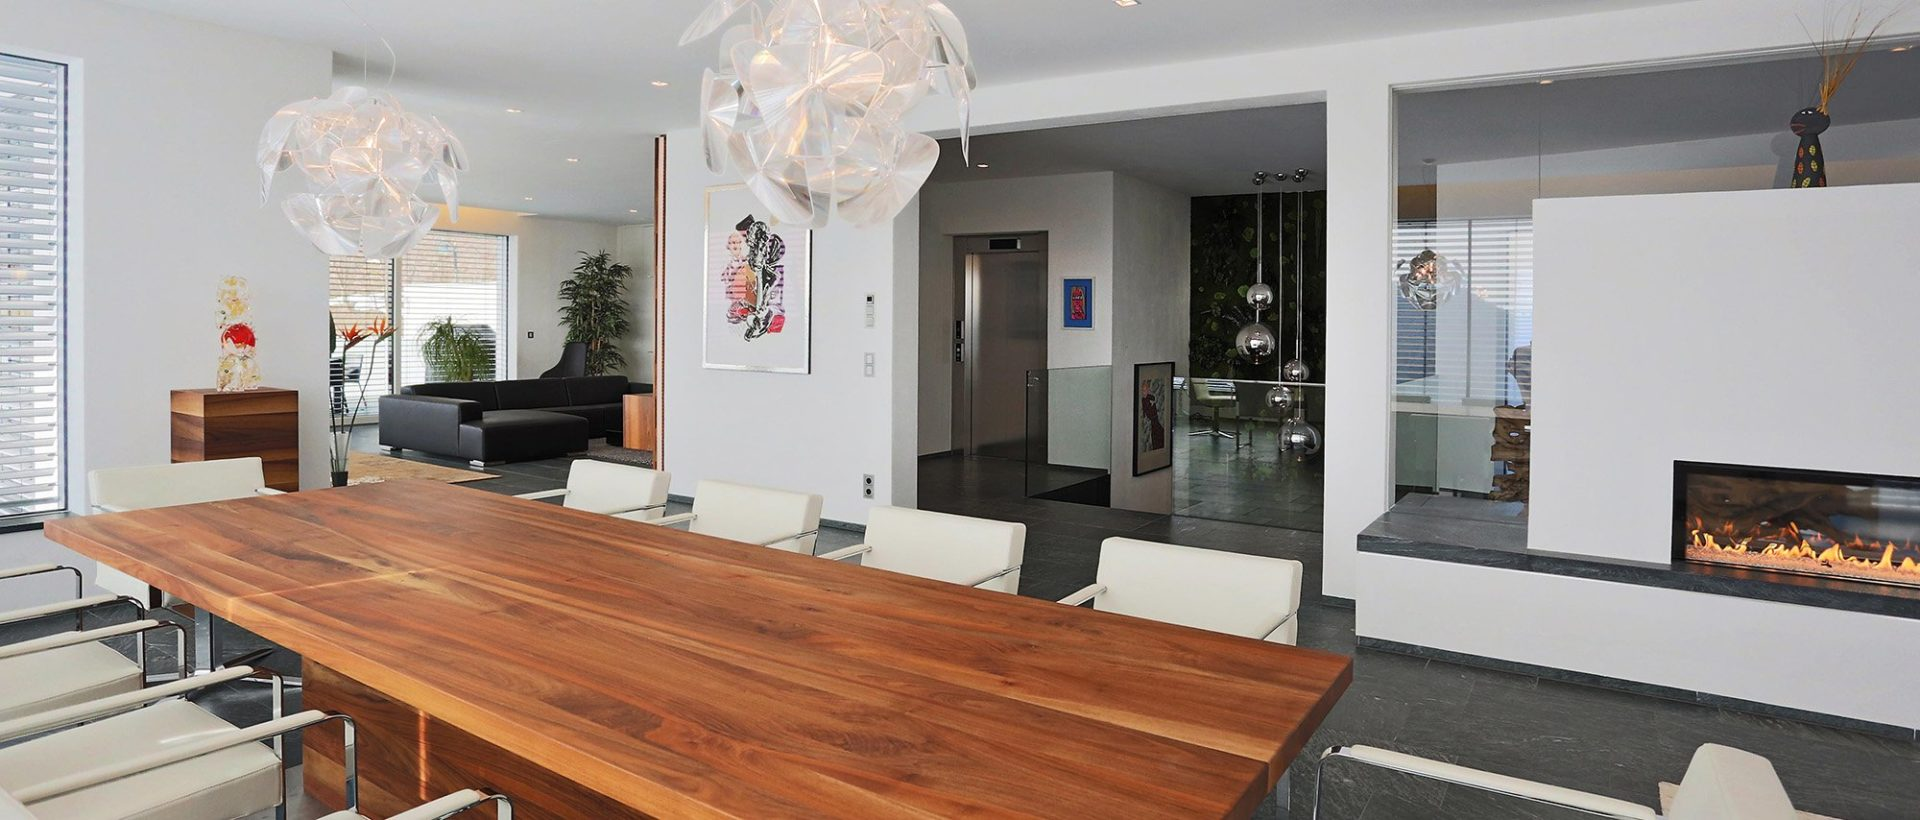 GroB Beautiful Home Staging Verkauf Immobilien Contemporary